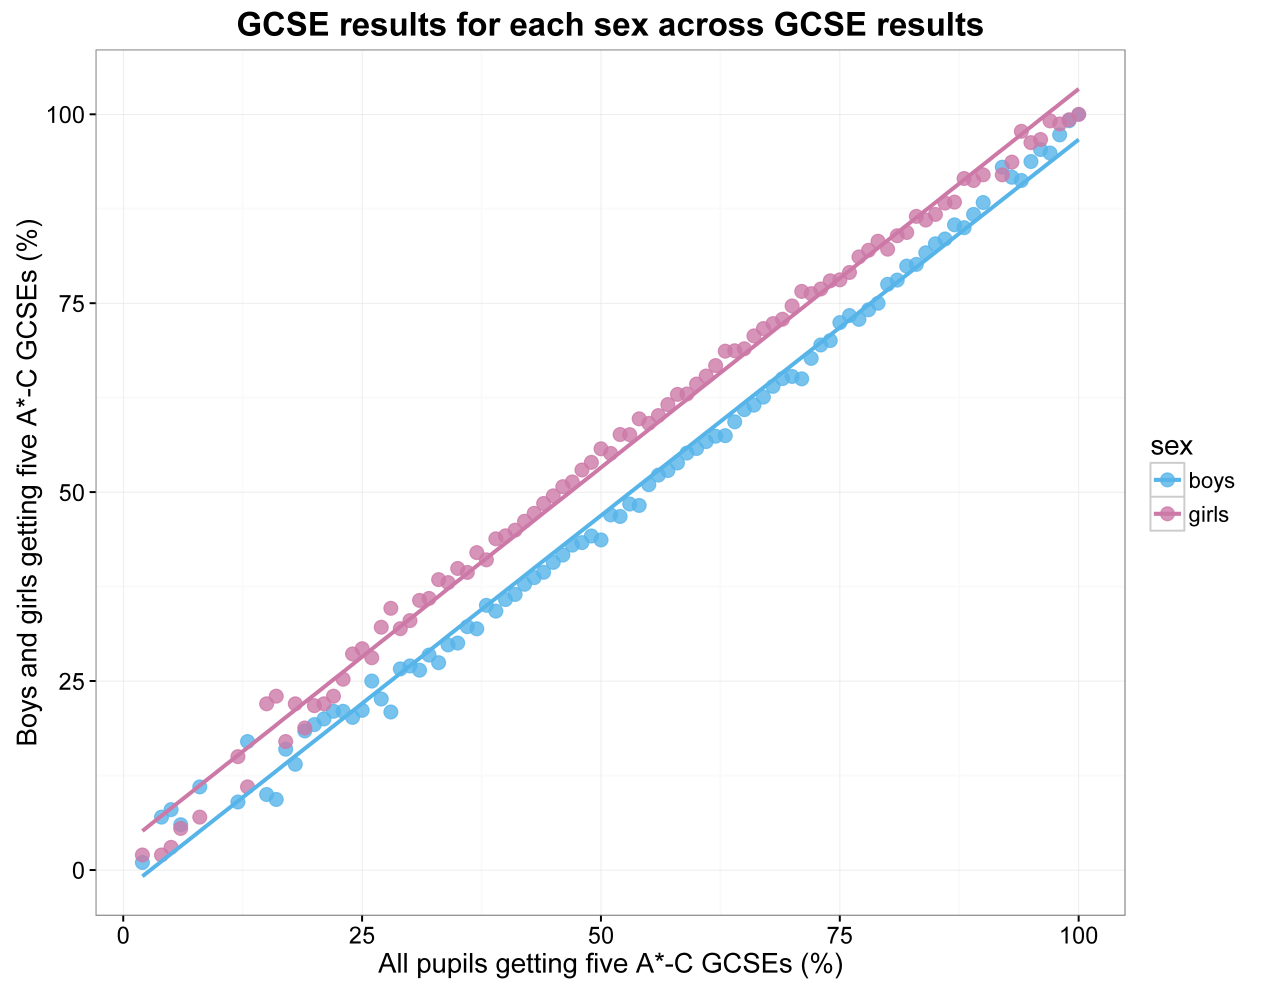 The gender gap in school achievement exploring uk gcse data education open data r ccuart Gallery